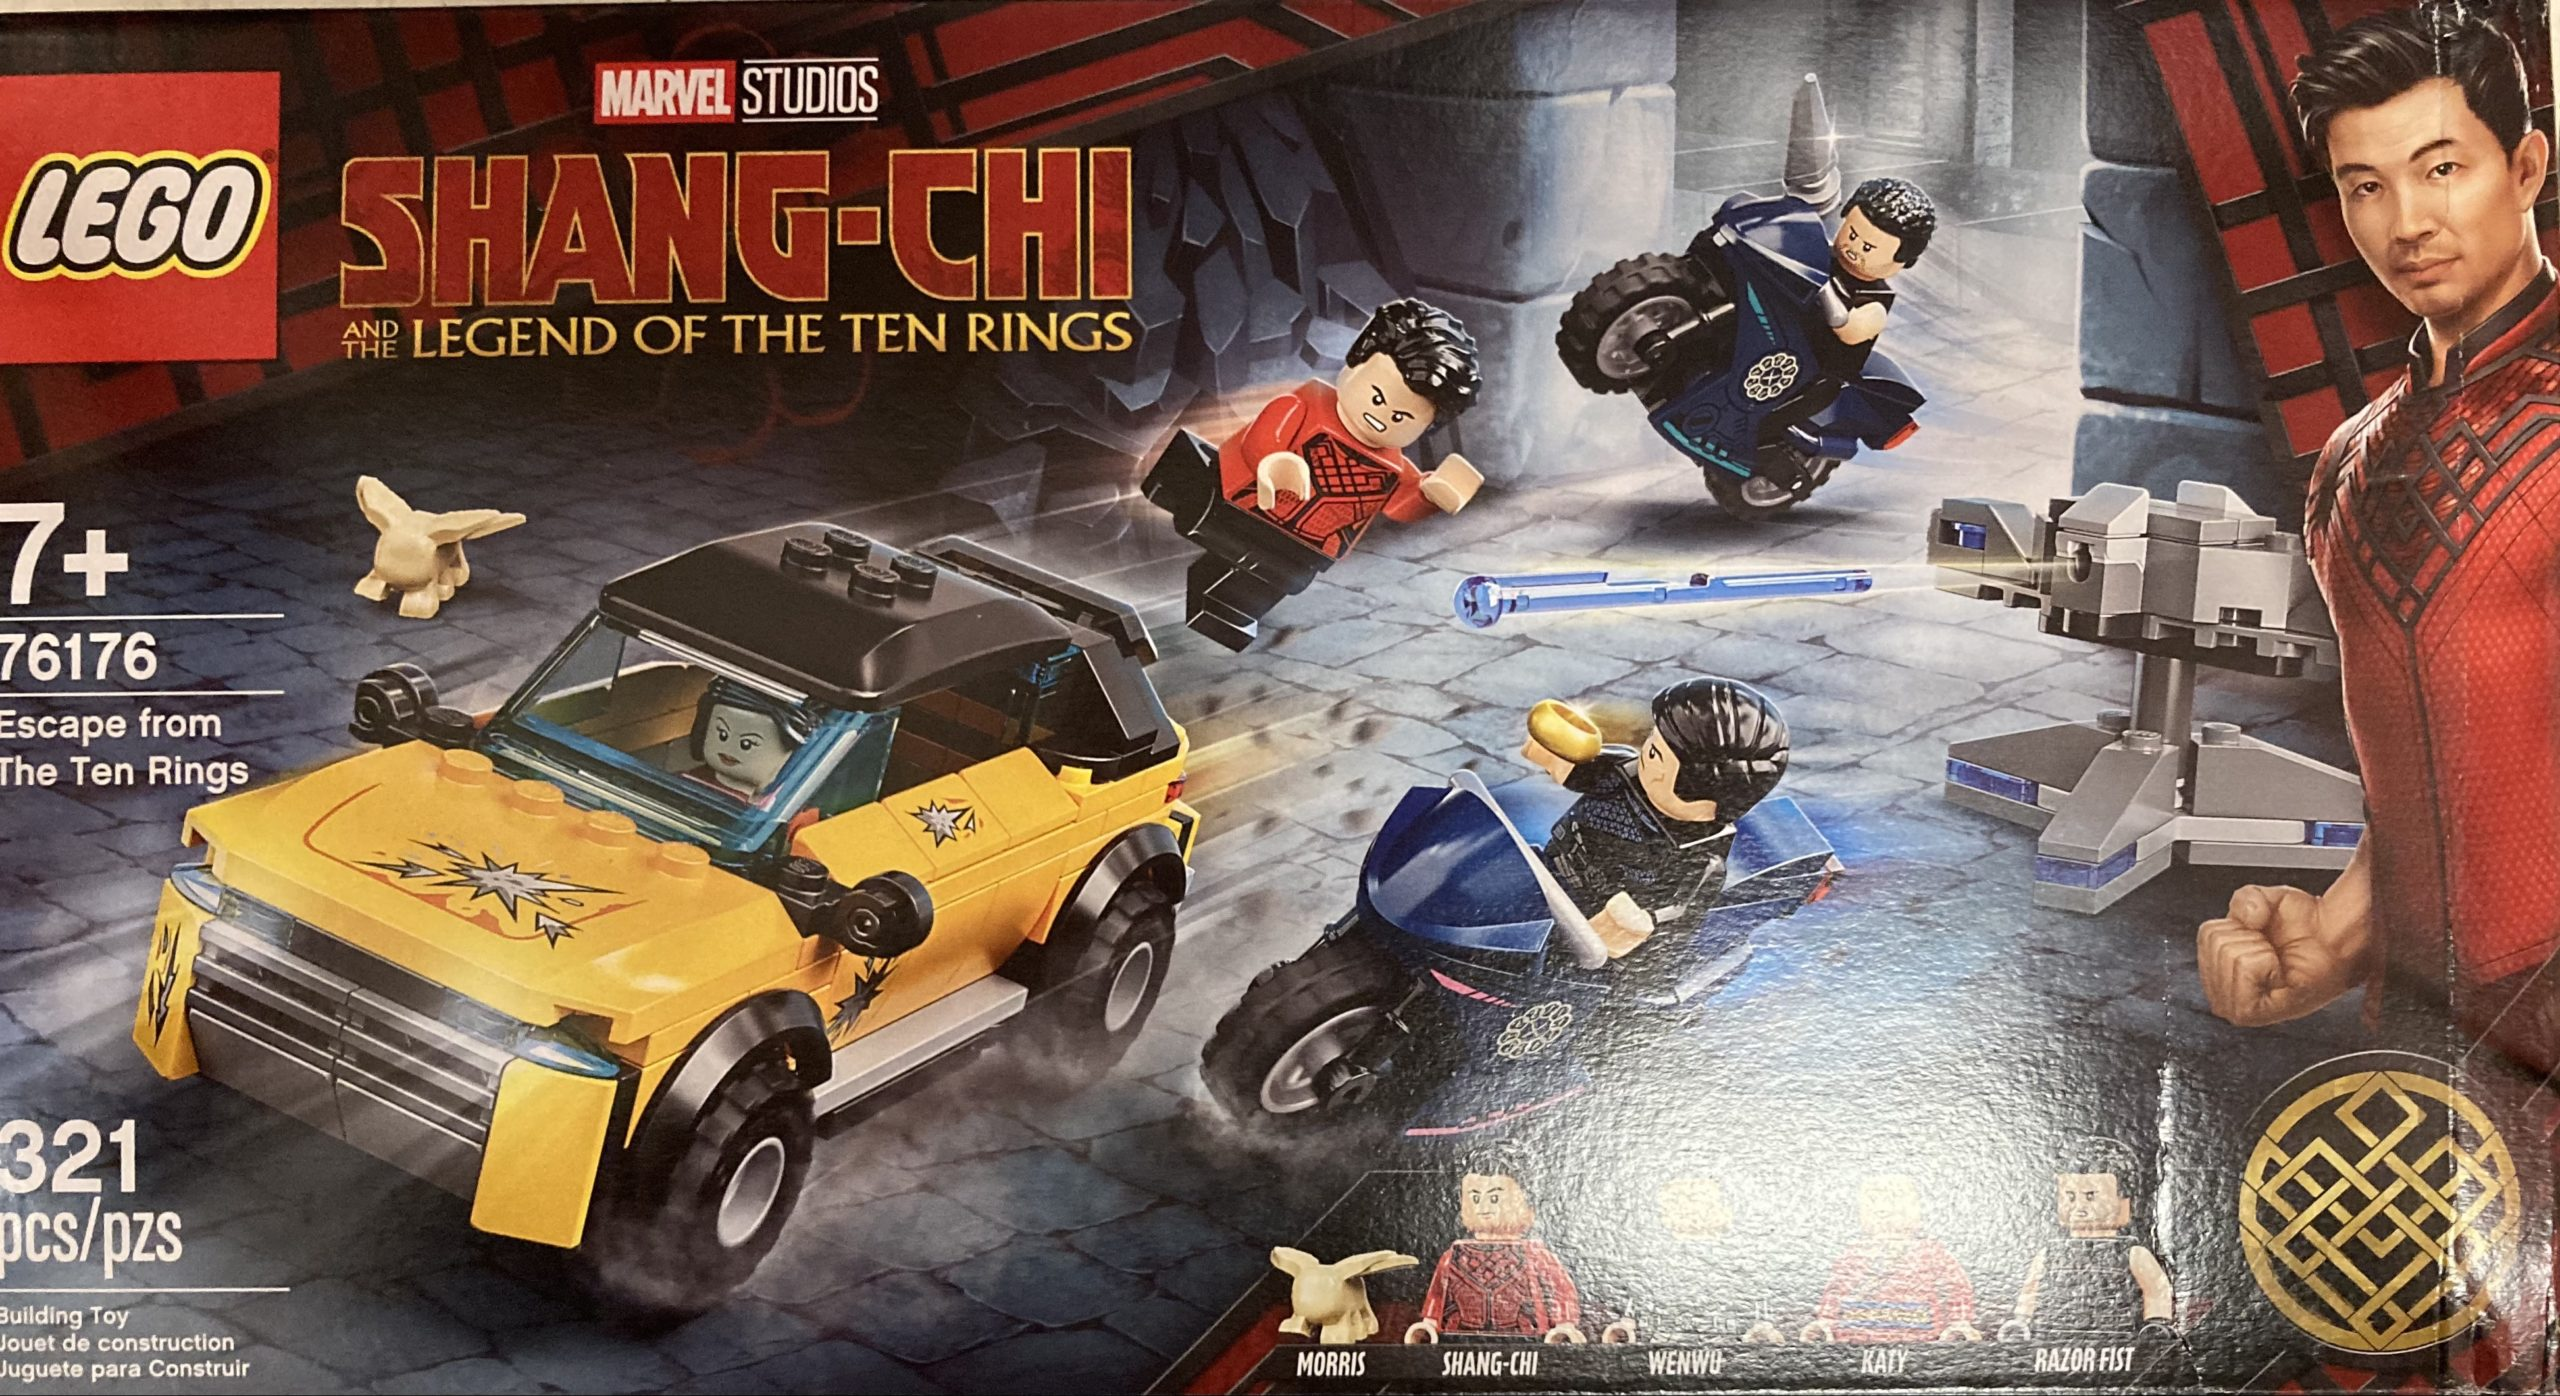 Shang-Chi LEGO with Morris